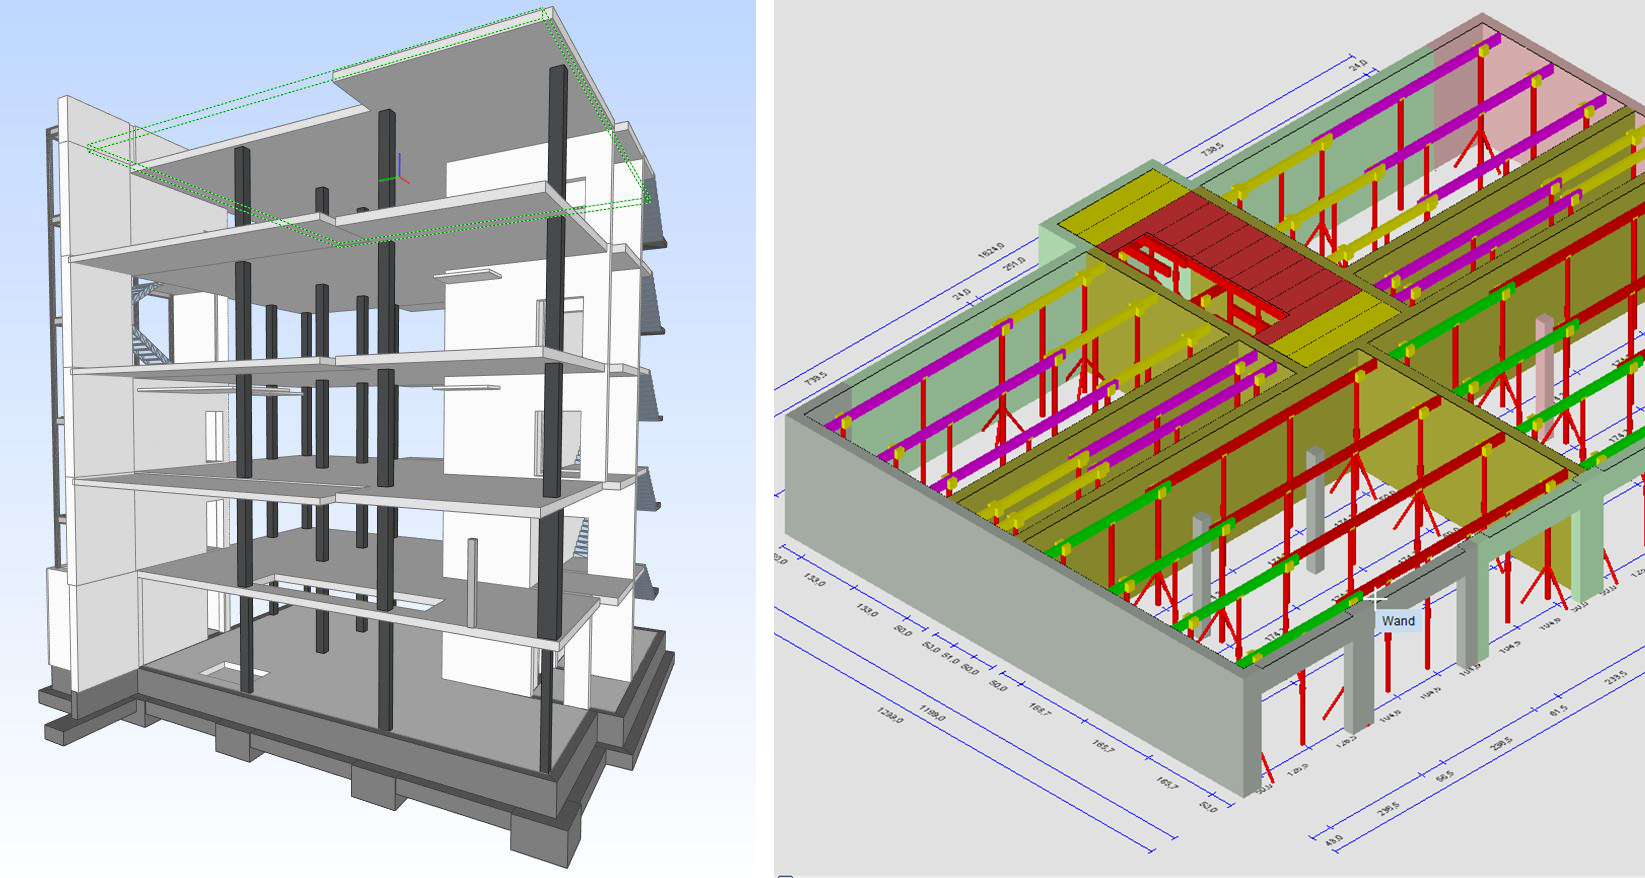 Formwork planning with  PASCHAL-Plan light 11.0 software